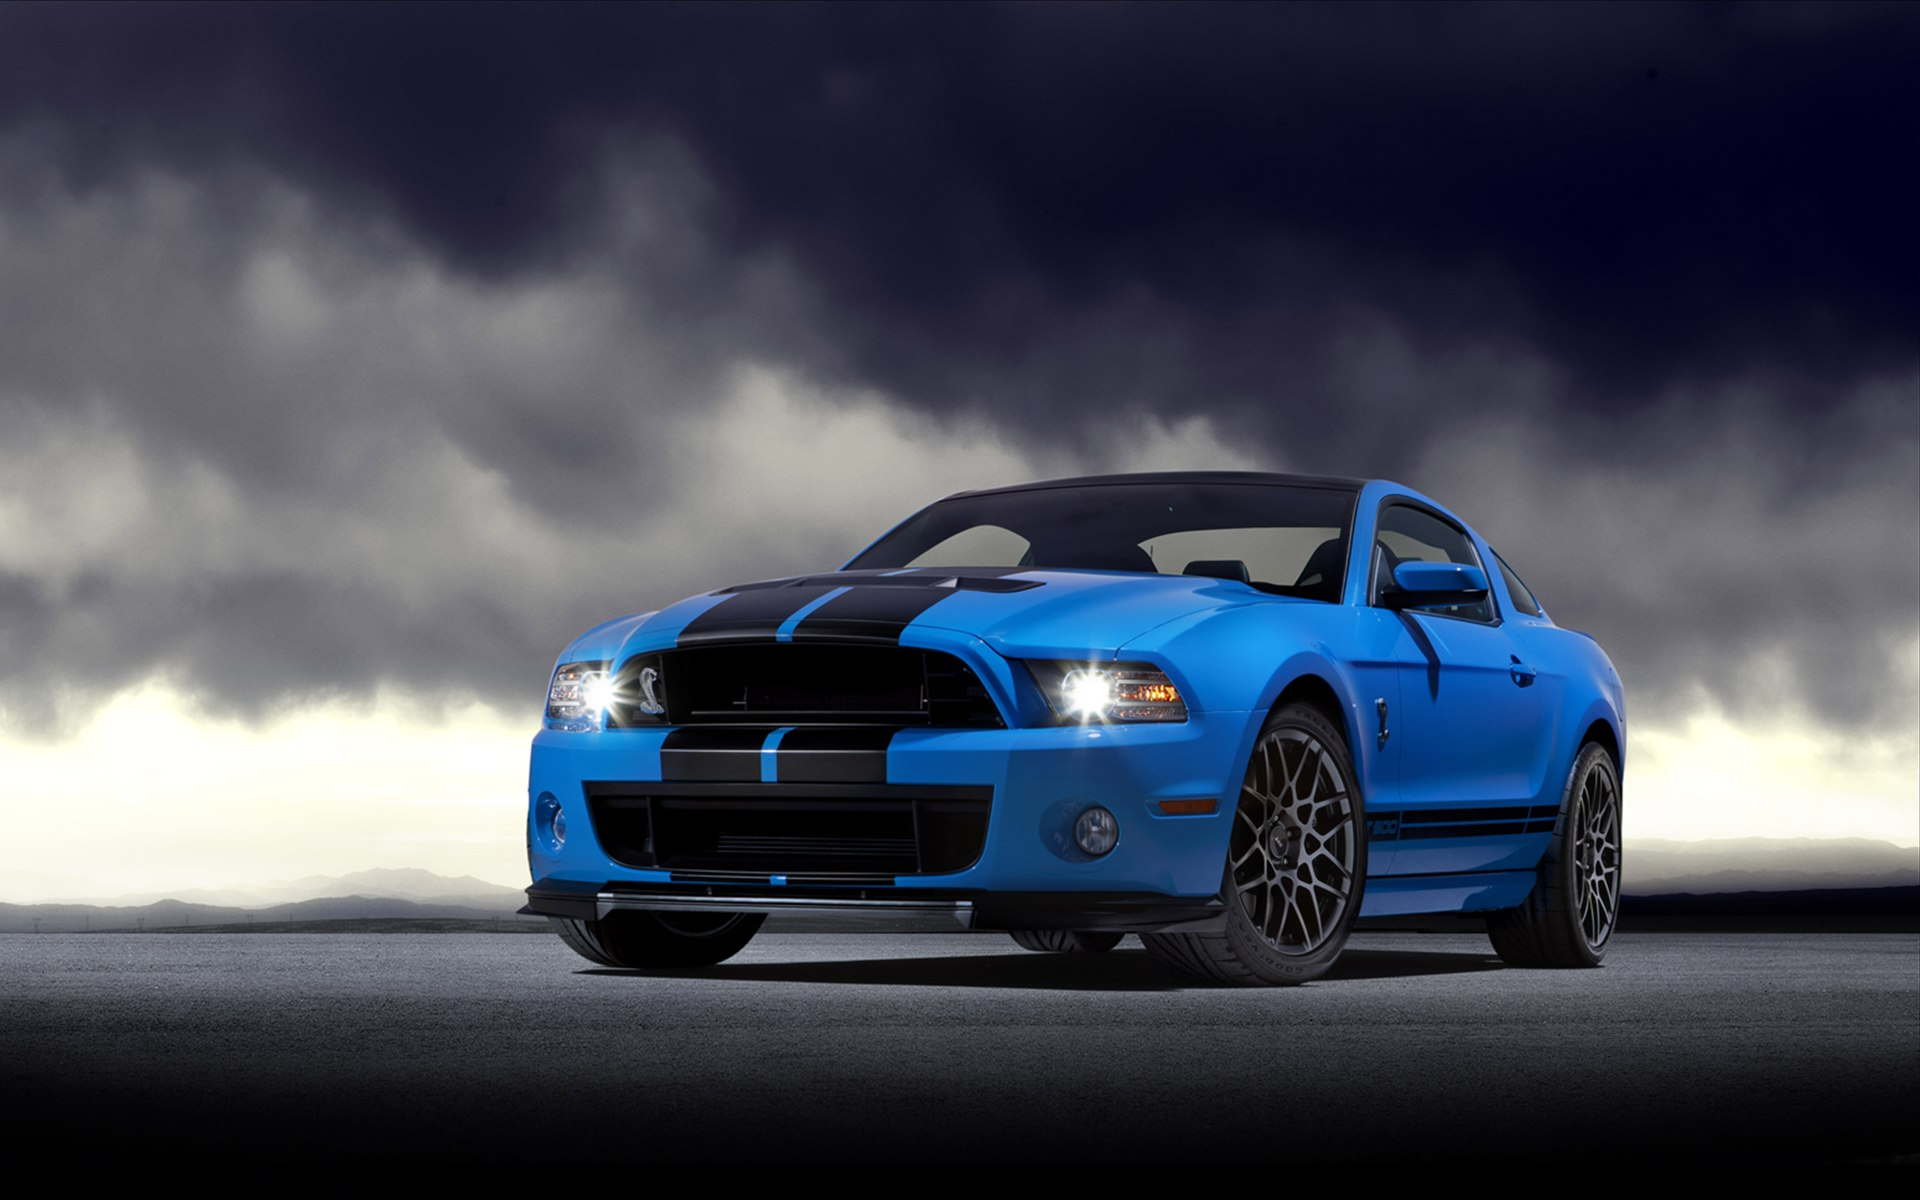 Amazing Shelby GT500 Wallpaper